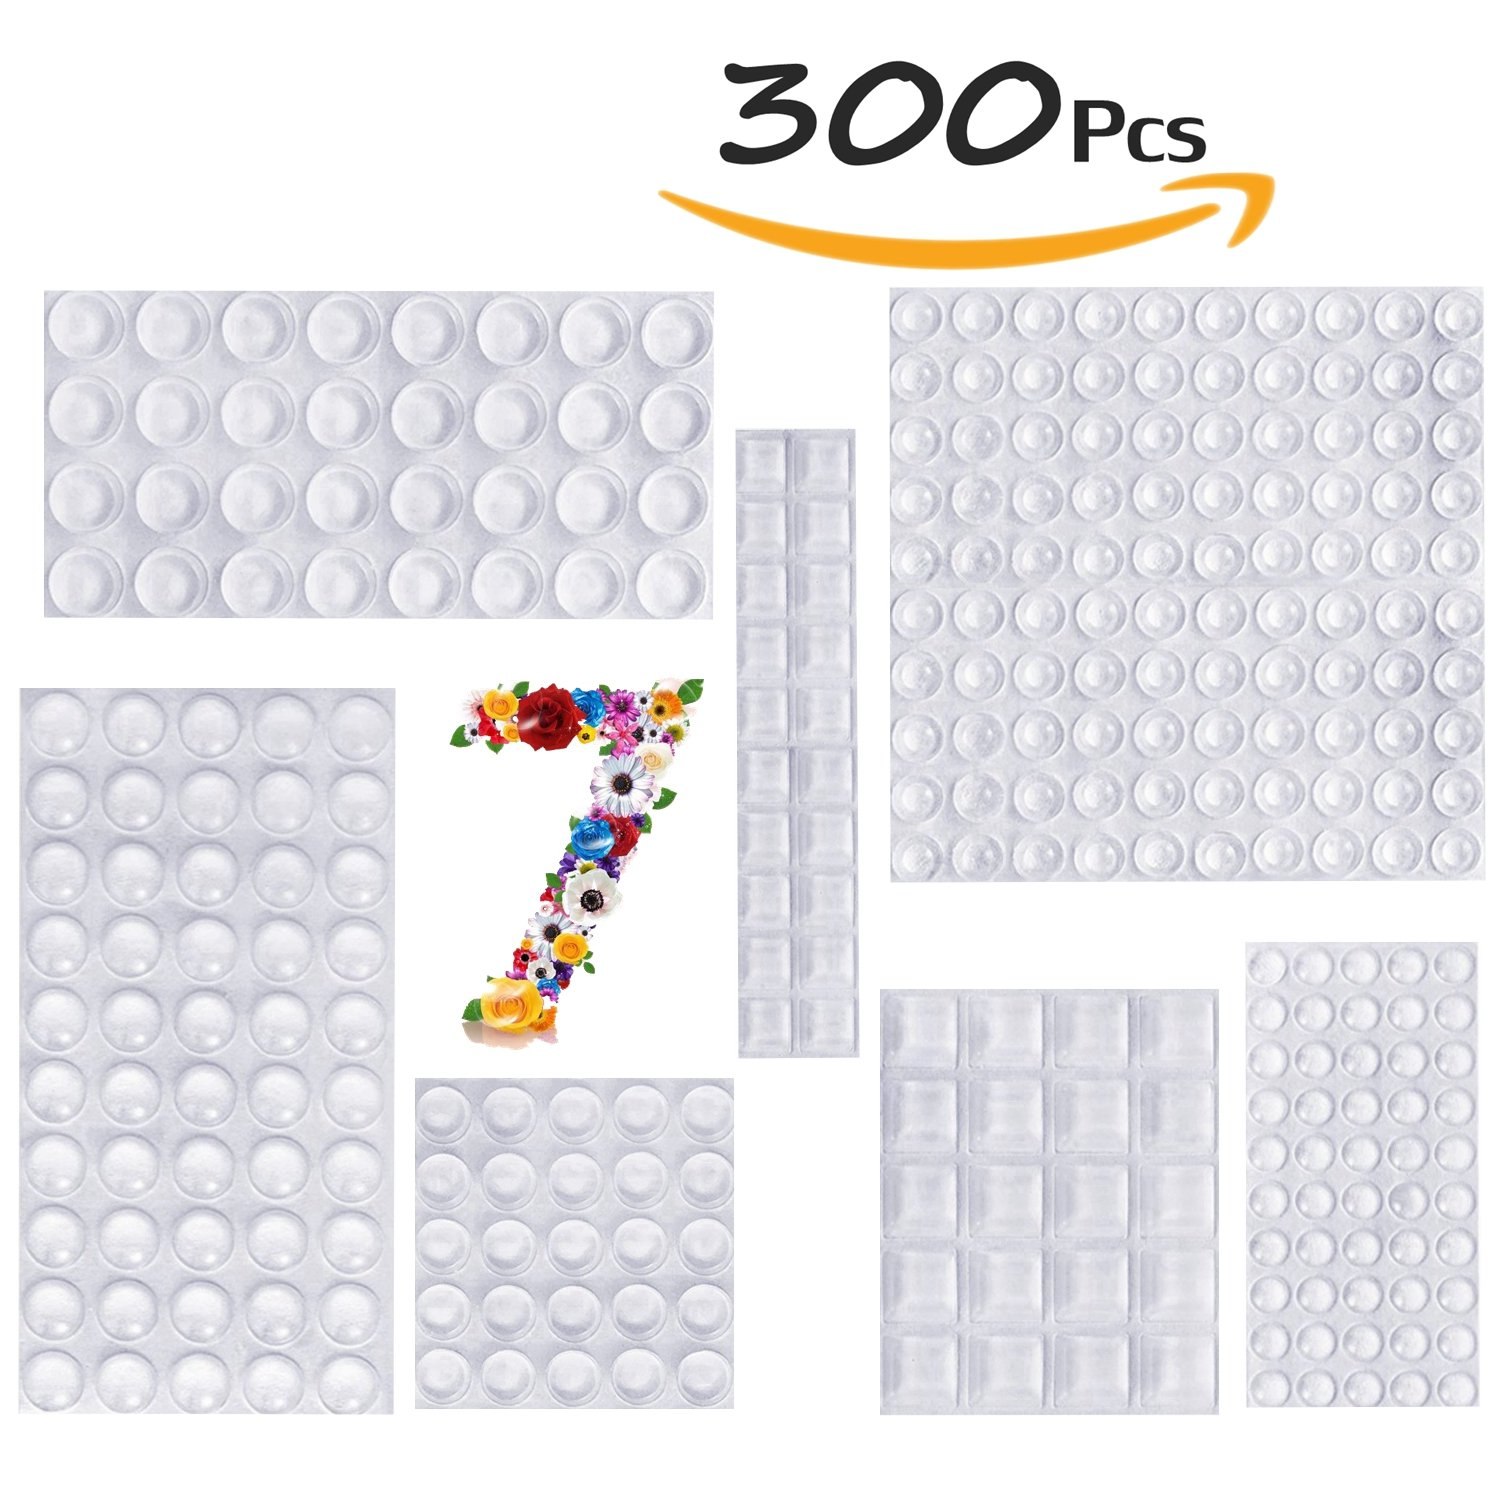 5d3dba76254 Clear Rubber Feet Bumpers Pads 300 Pieces Self Adhesive Transparent Stick  Bumper Noise Dampening Buffer Bumpers For Door Drawer Self Stick  Cabinet-MOZOLAND